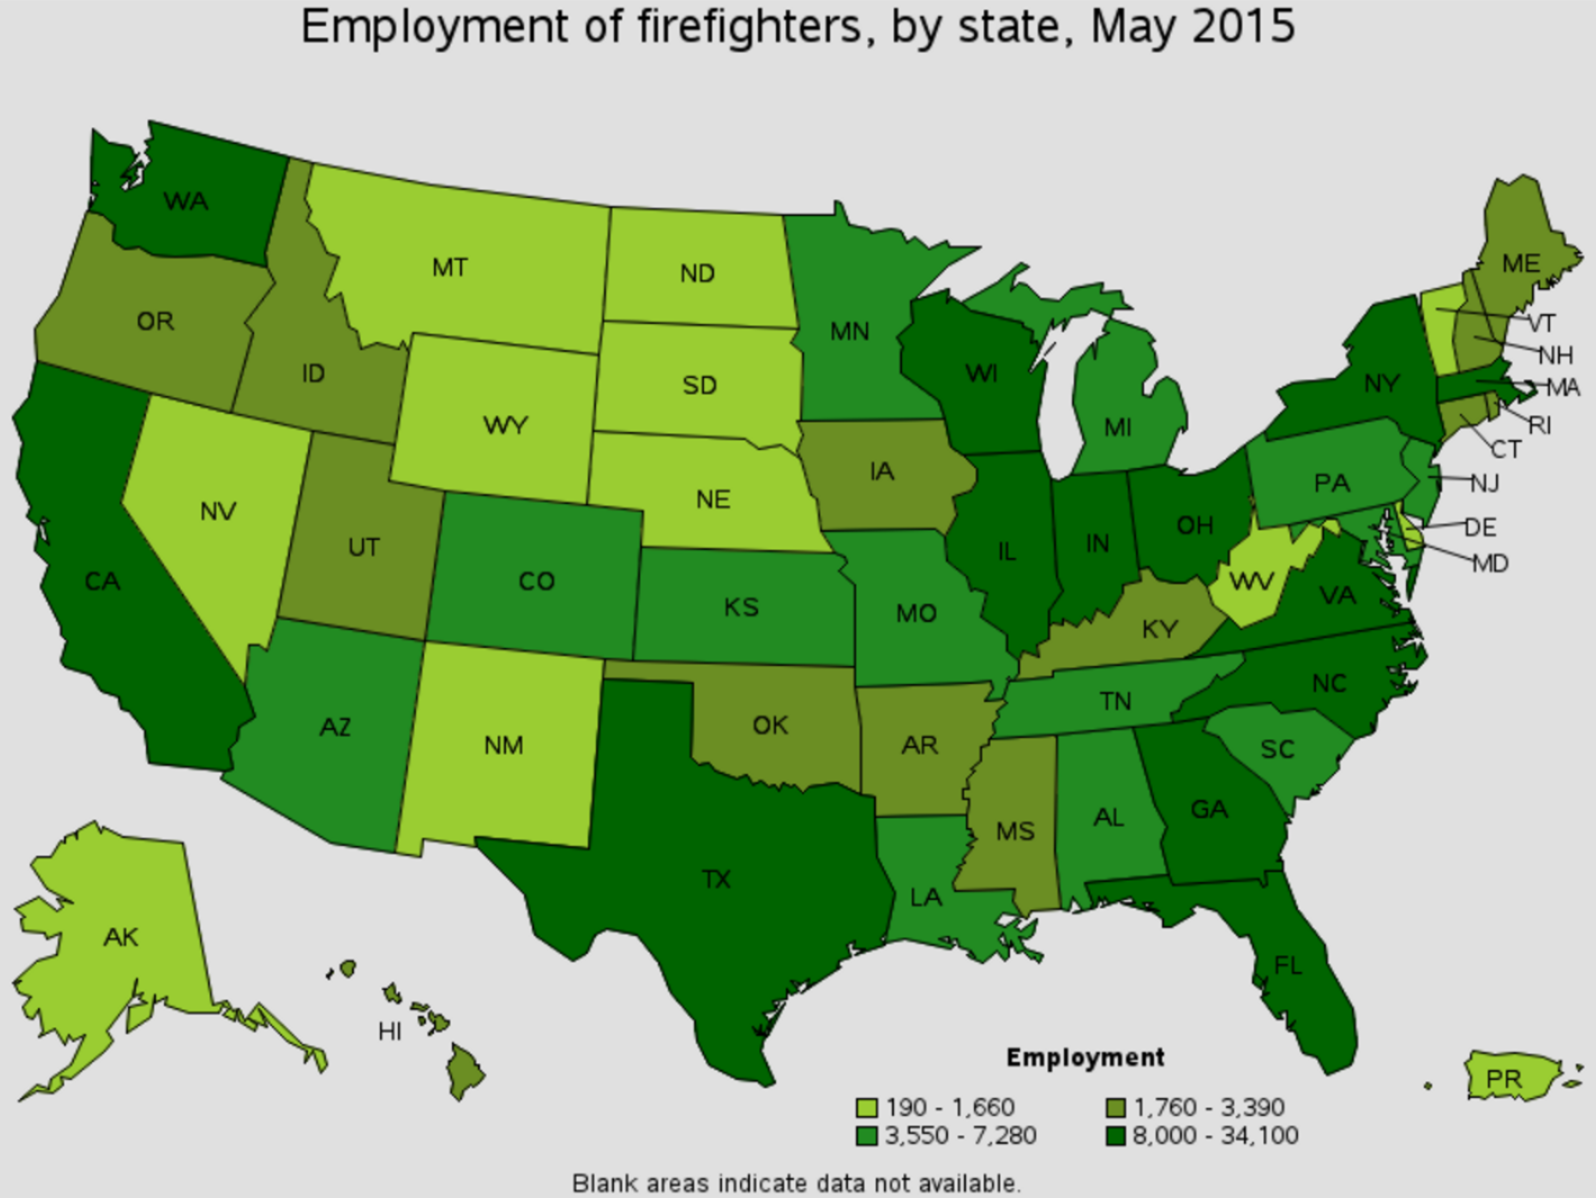 firefighter job outlook by state Dayton Ohio